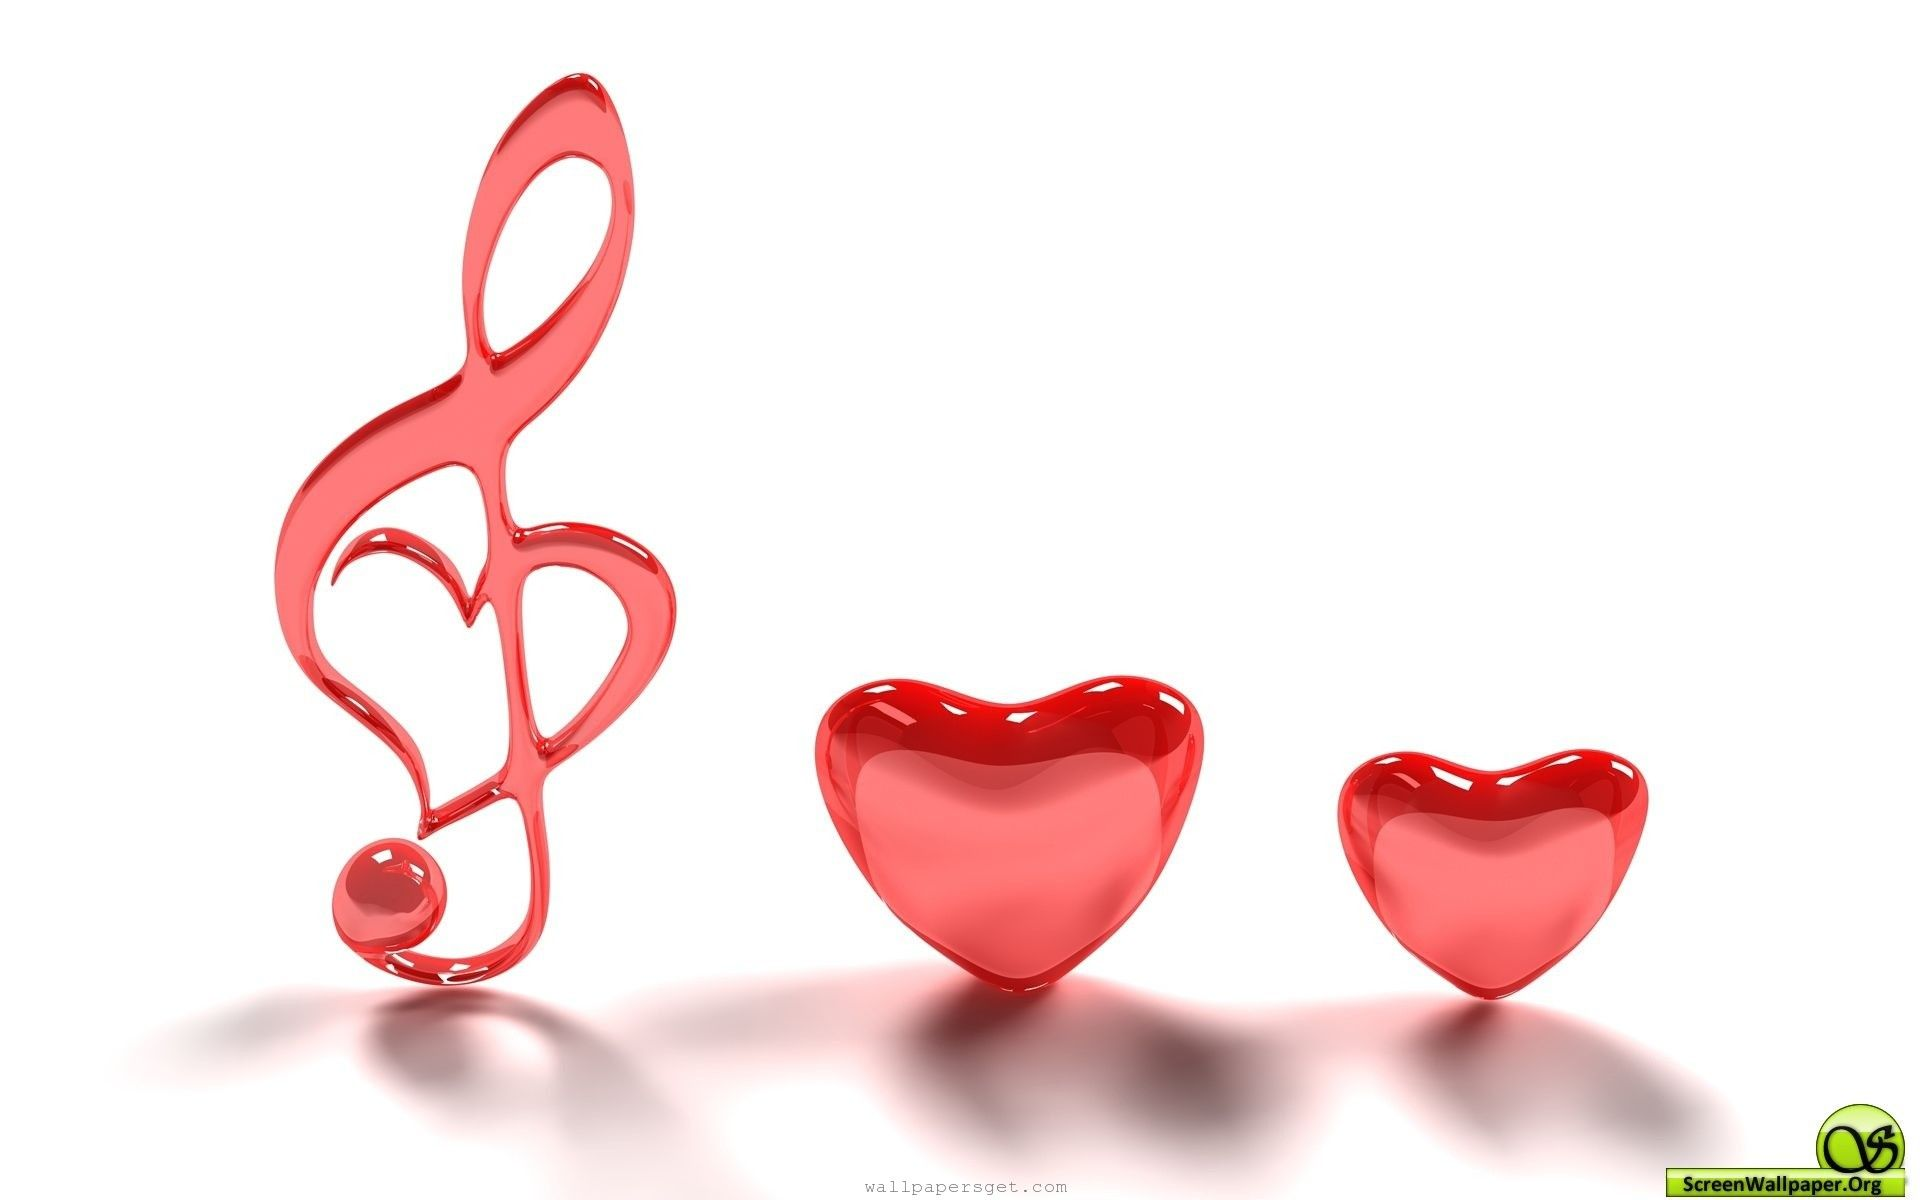 Love Heart Wallpaper Free Download For Mobile 15